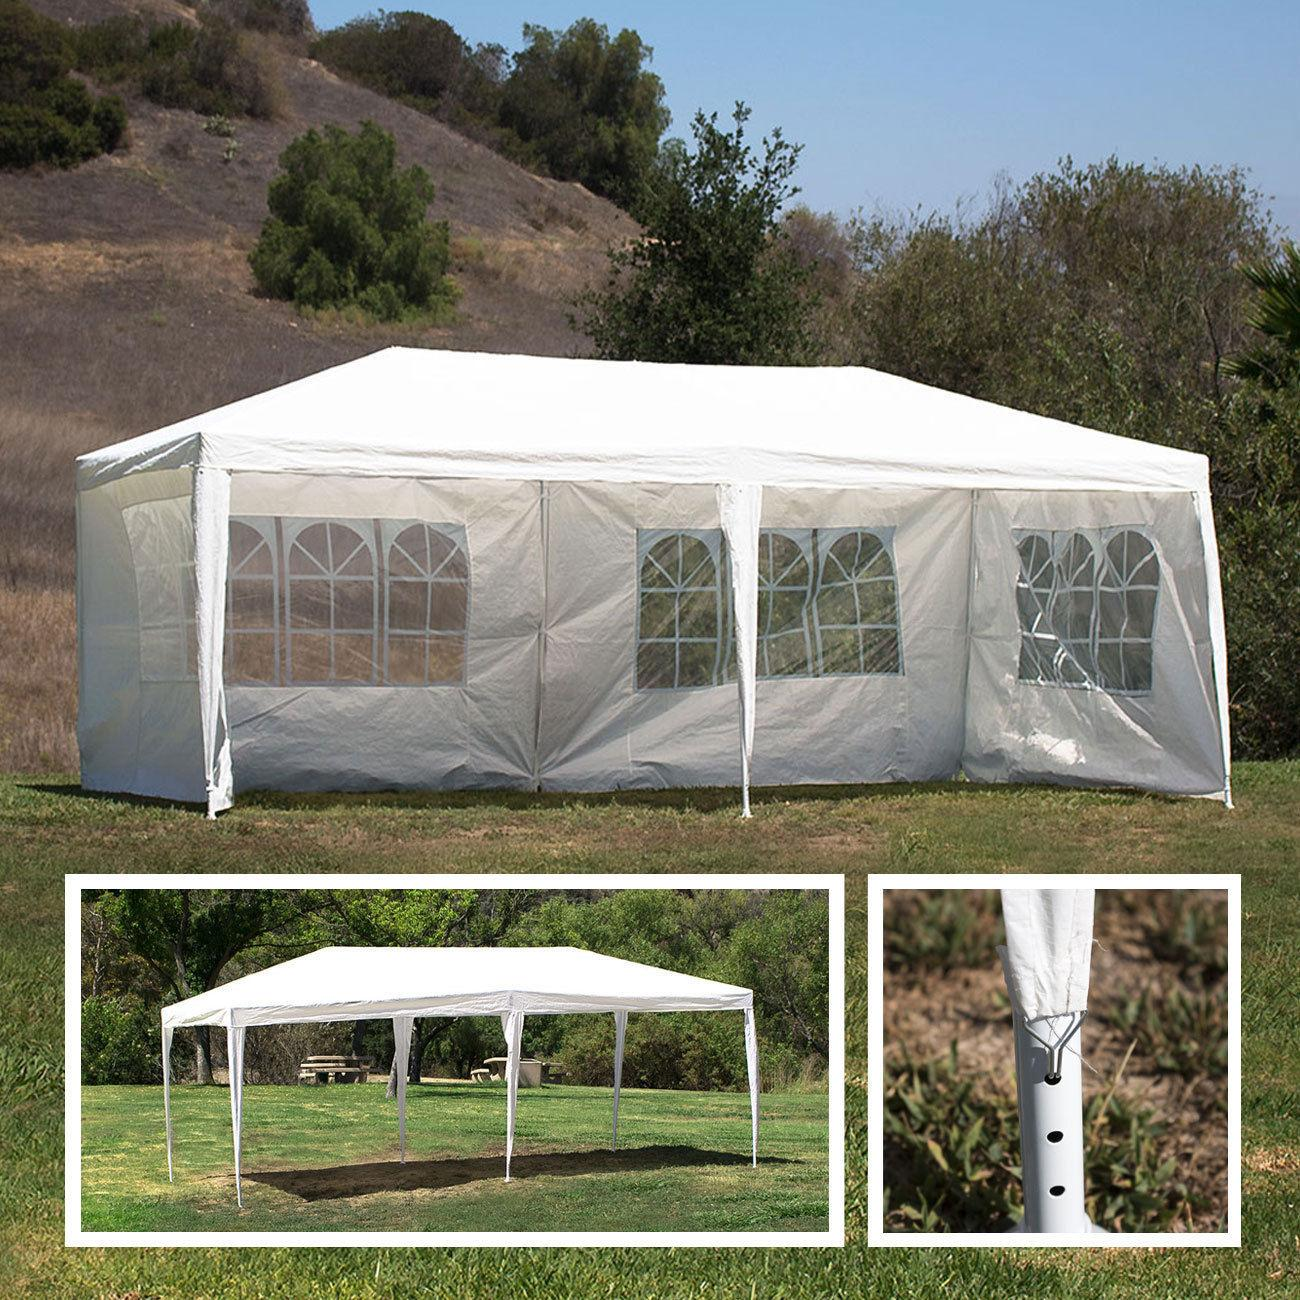 Outdoor 10\'x20\' Canopy Party Wedding Tent Heavy Duty Gazebo Pavilion Cater Event